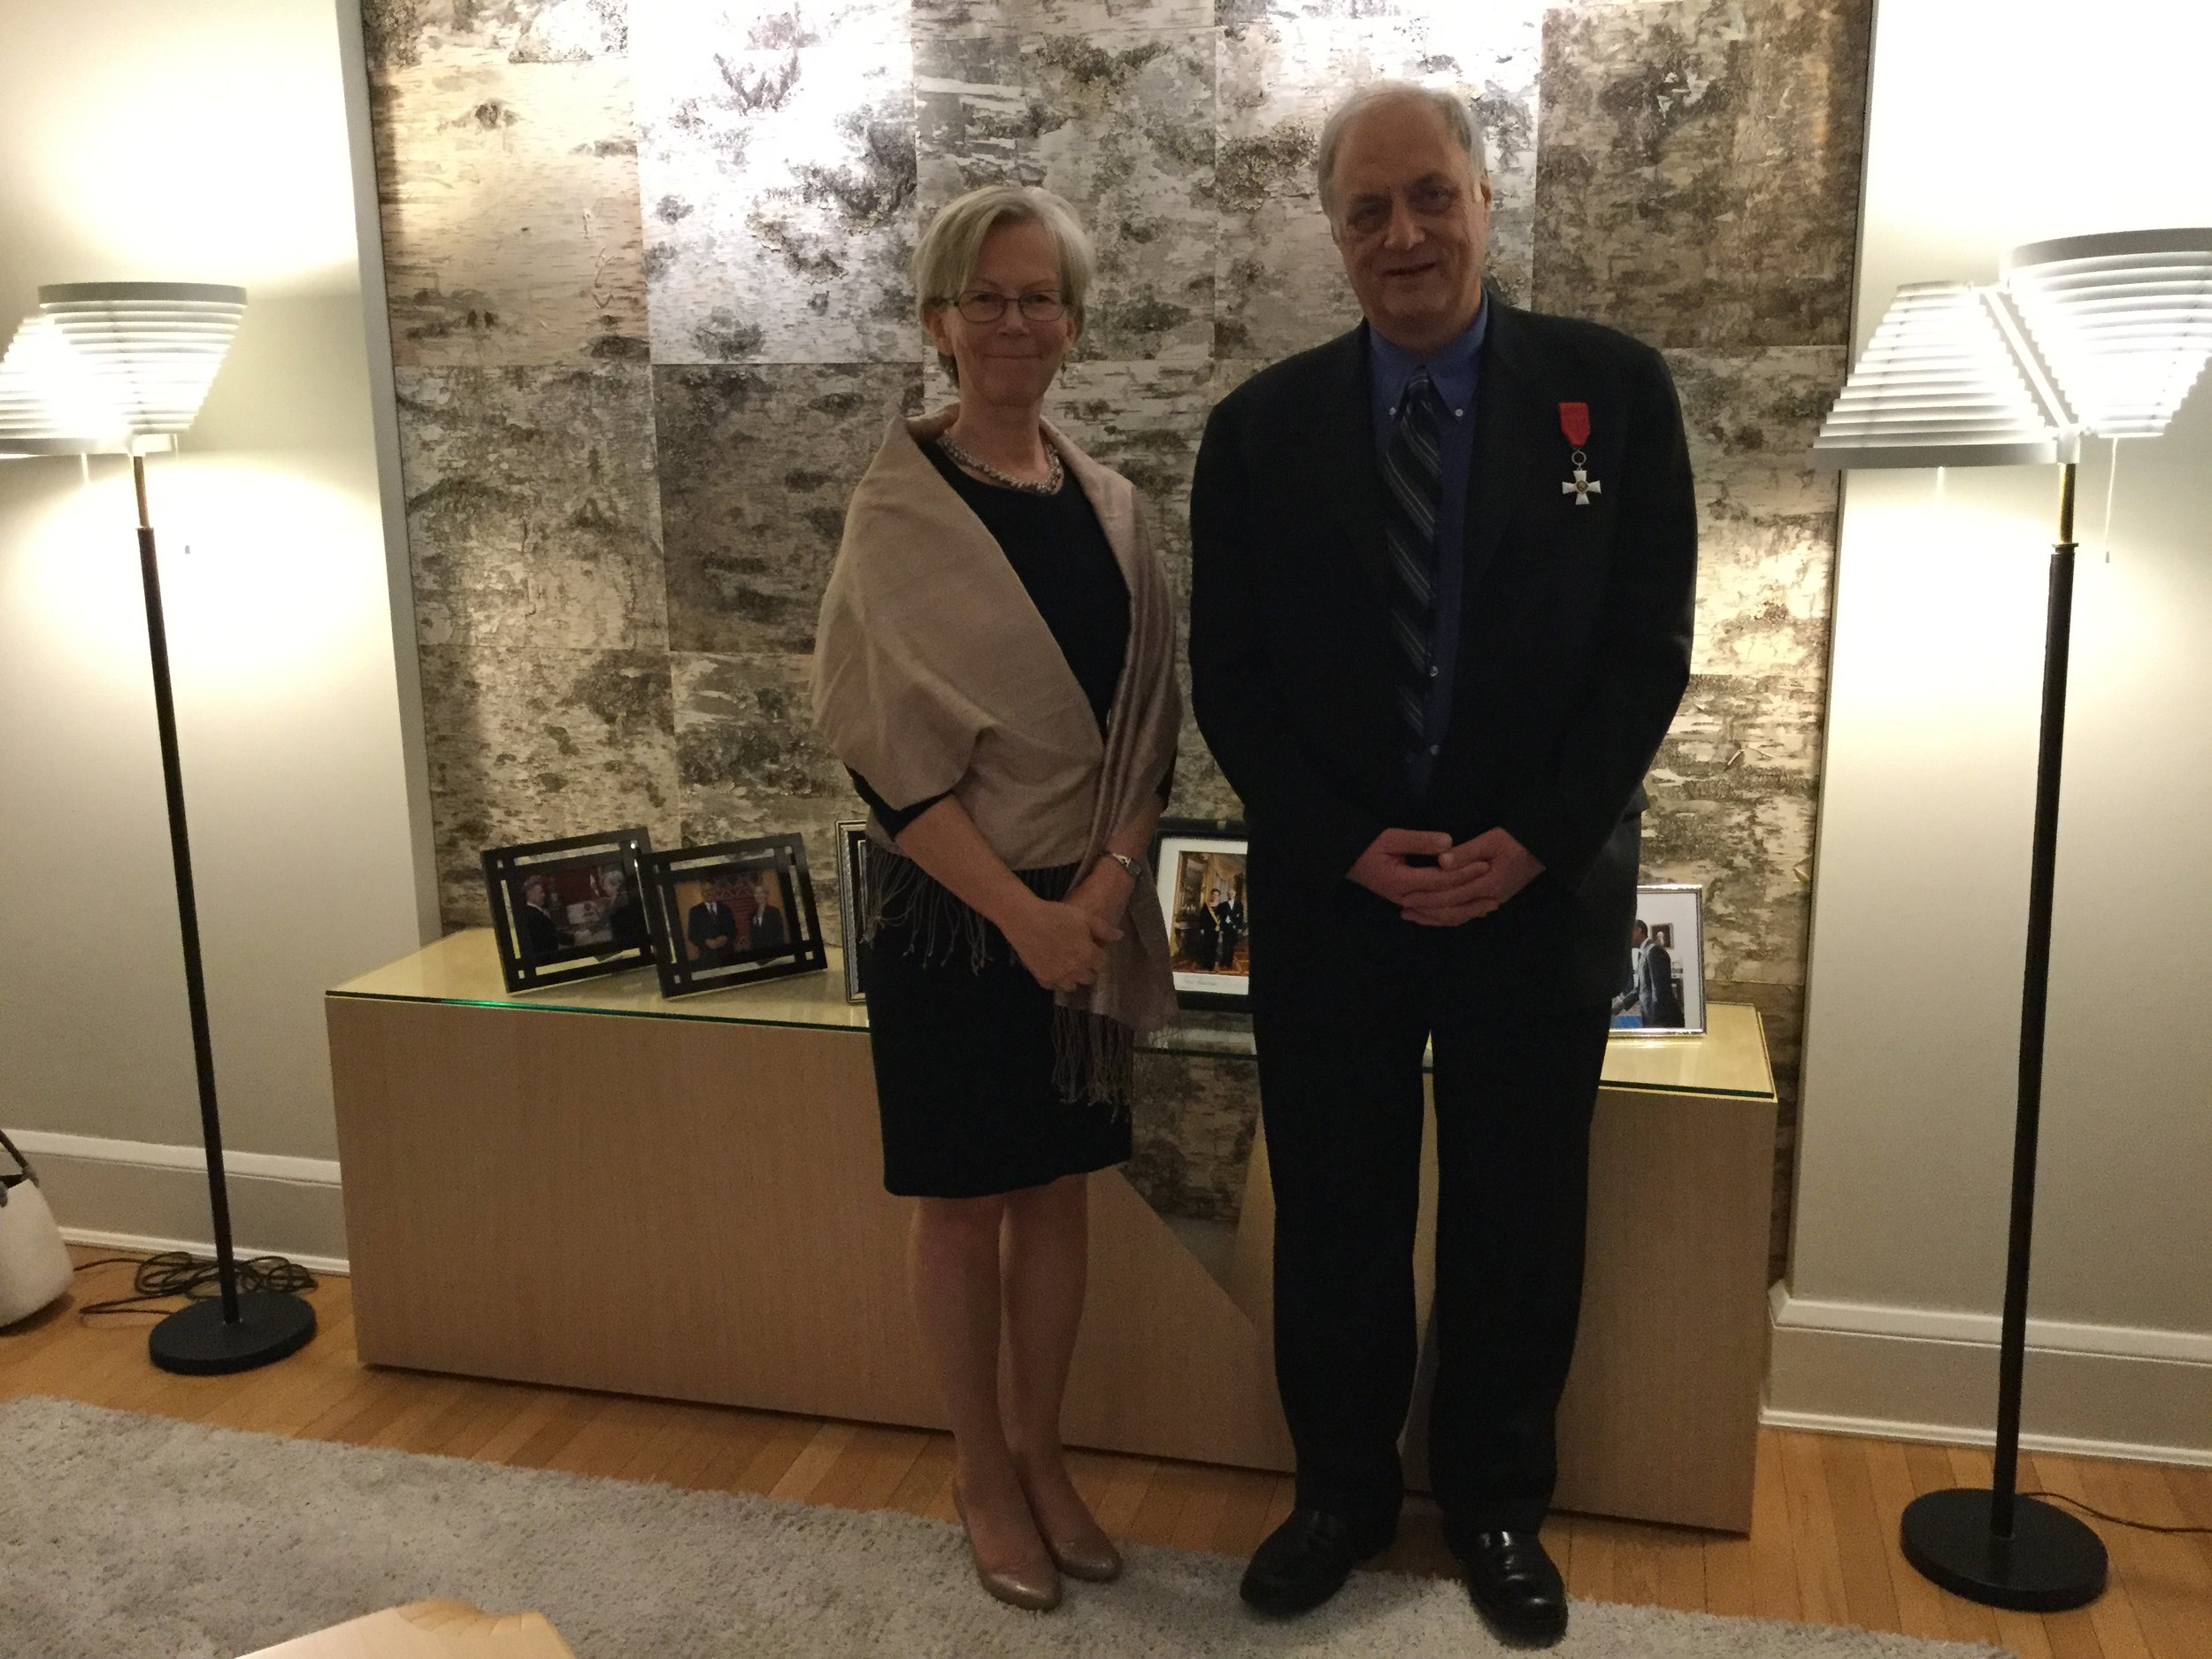 """Craig Randal Johnson, decorated as """"Knight of the Order of the Lion of Finland""""/ with Finnish Ambassador to the USA Kirsti Kauppi/ Washington D.C. 2017"""